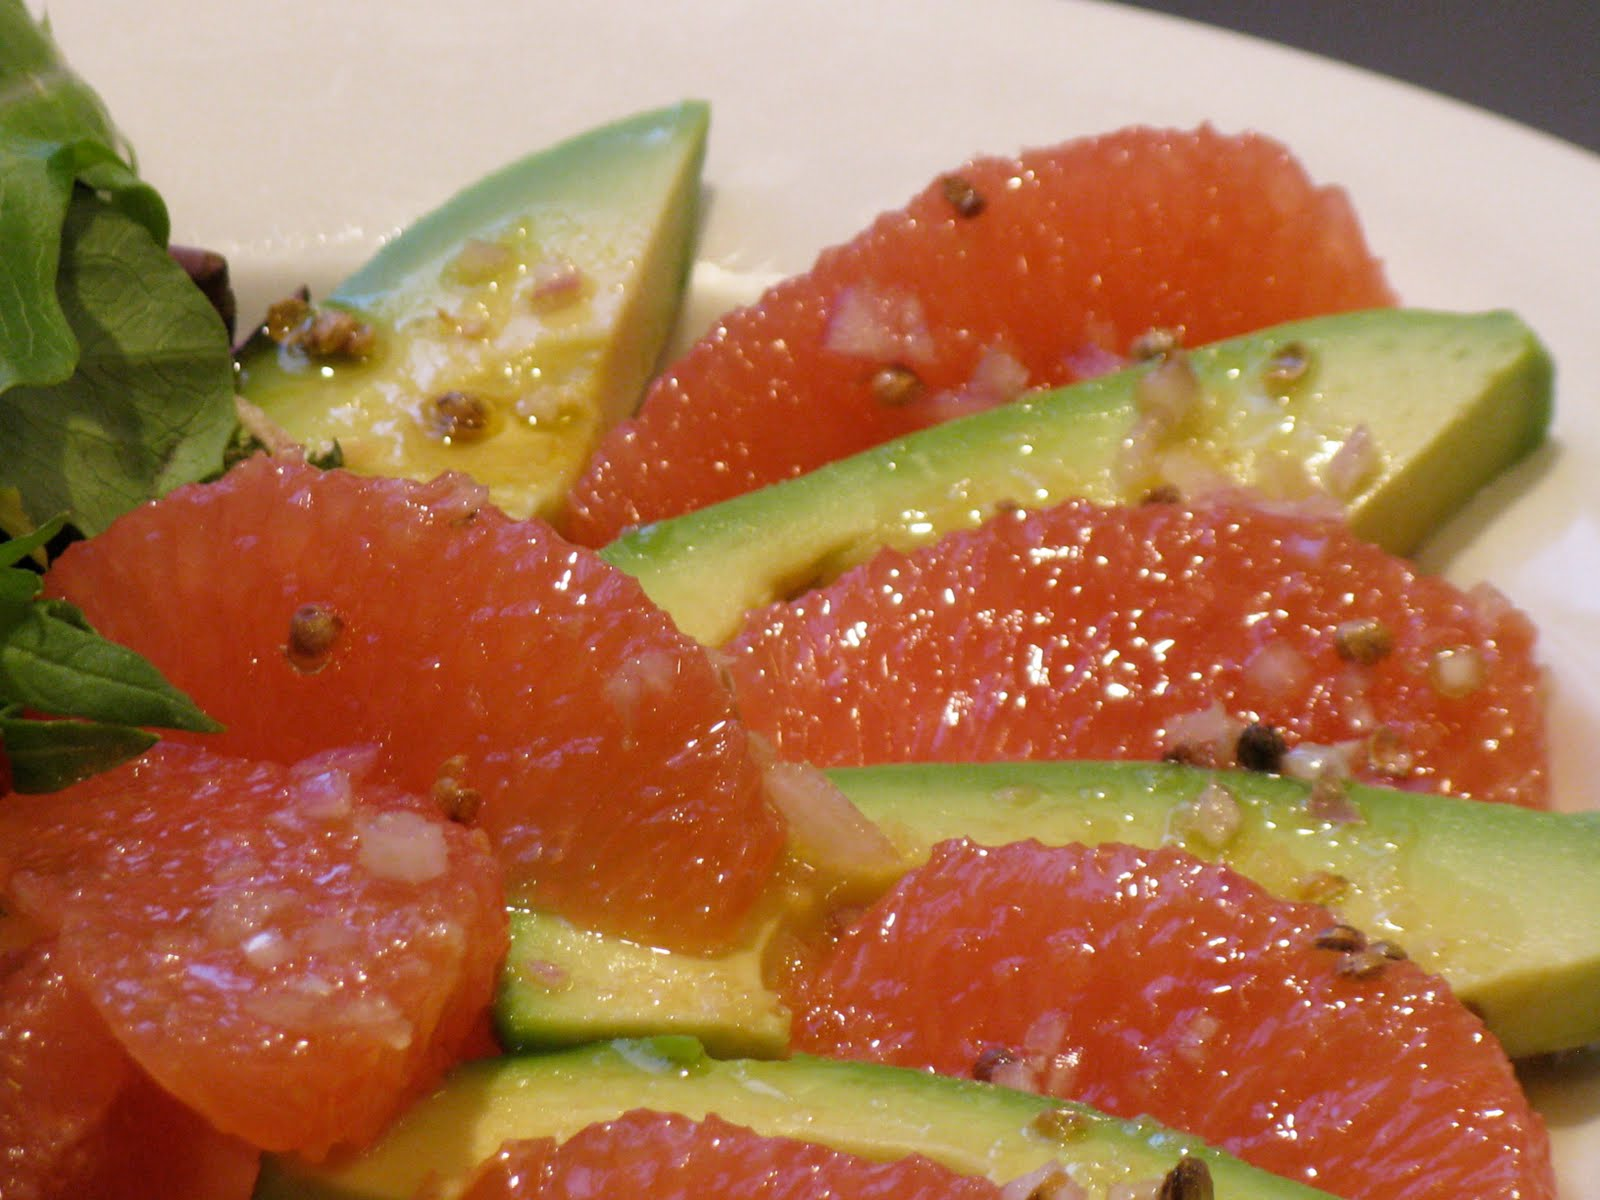 The Cilantropist: Avocado and Red Grapefruit Salad